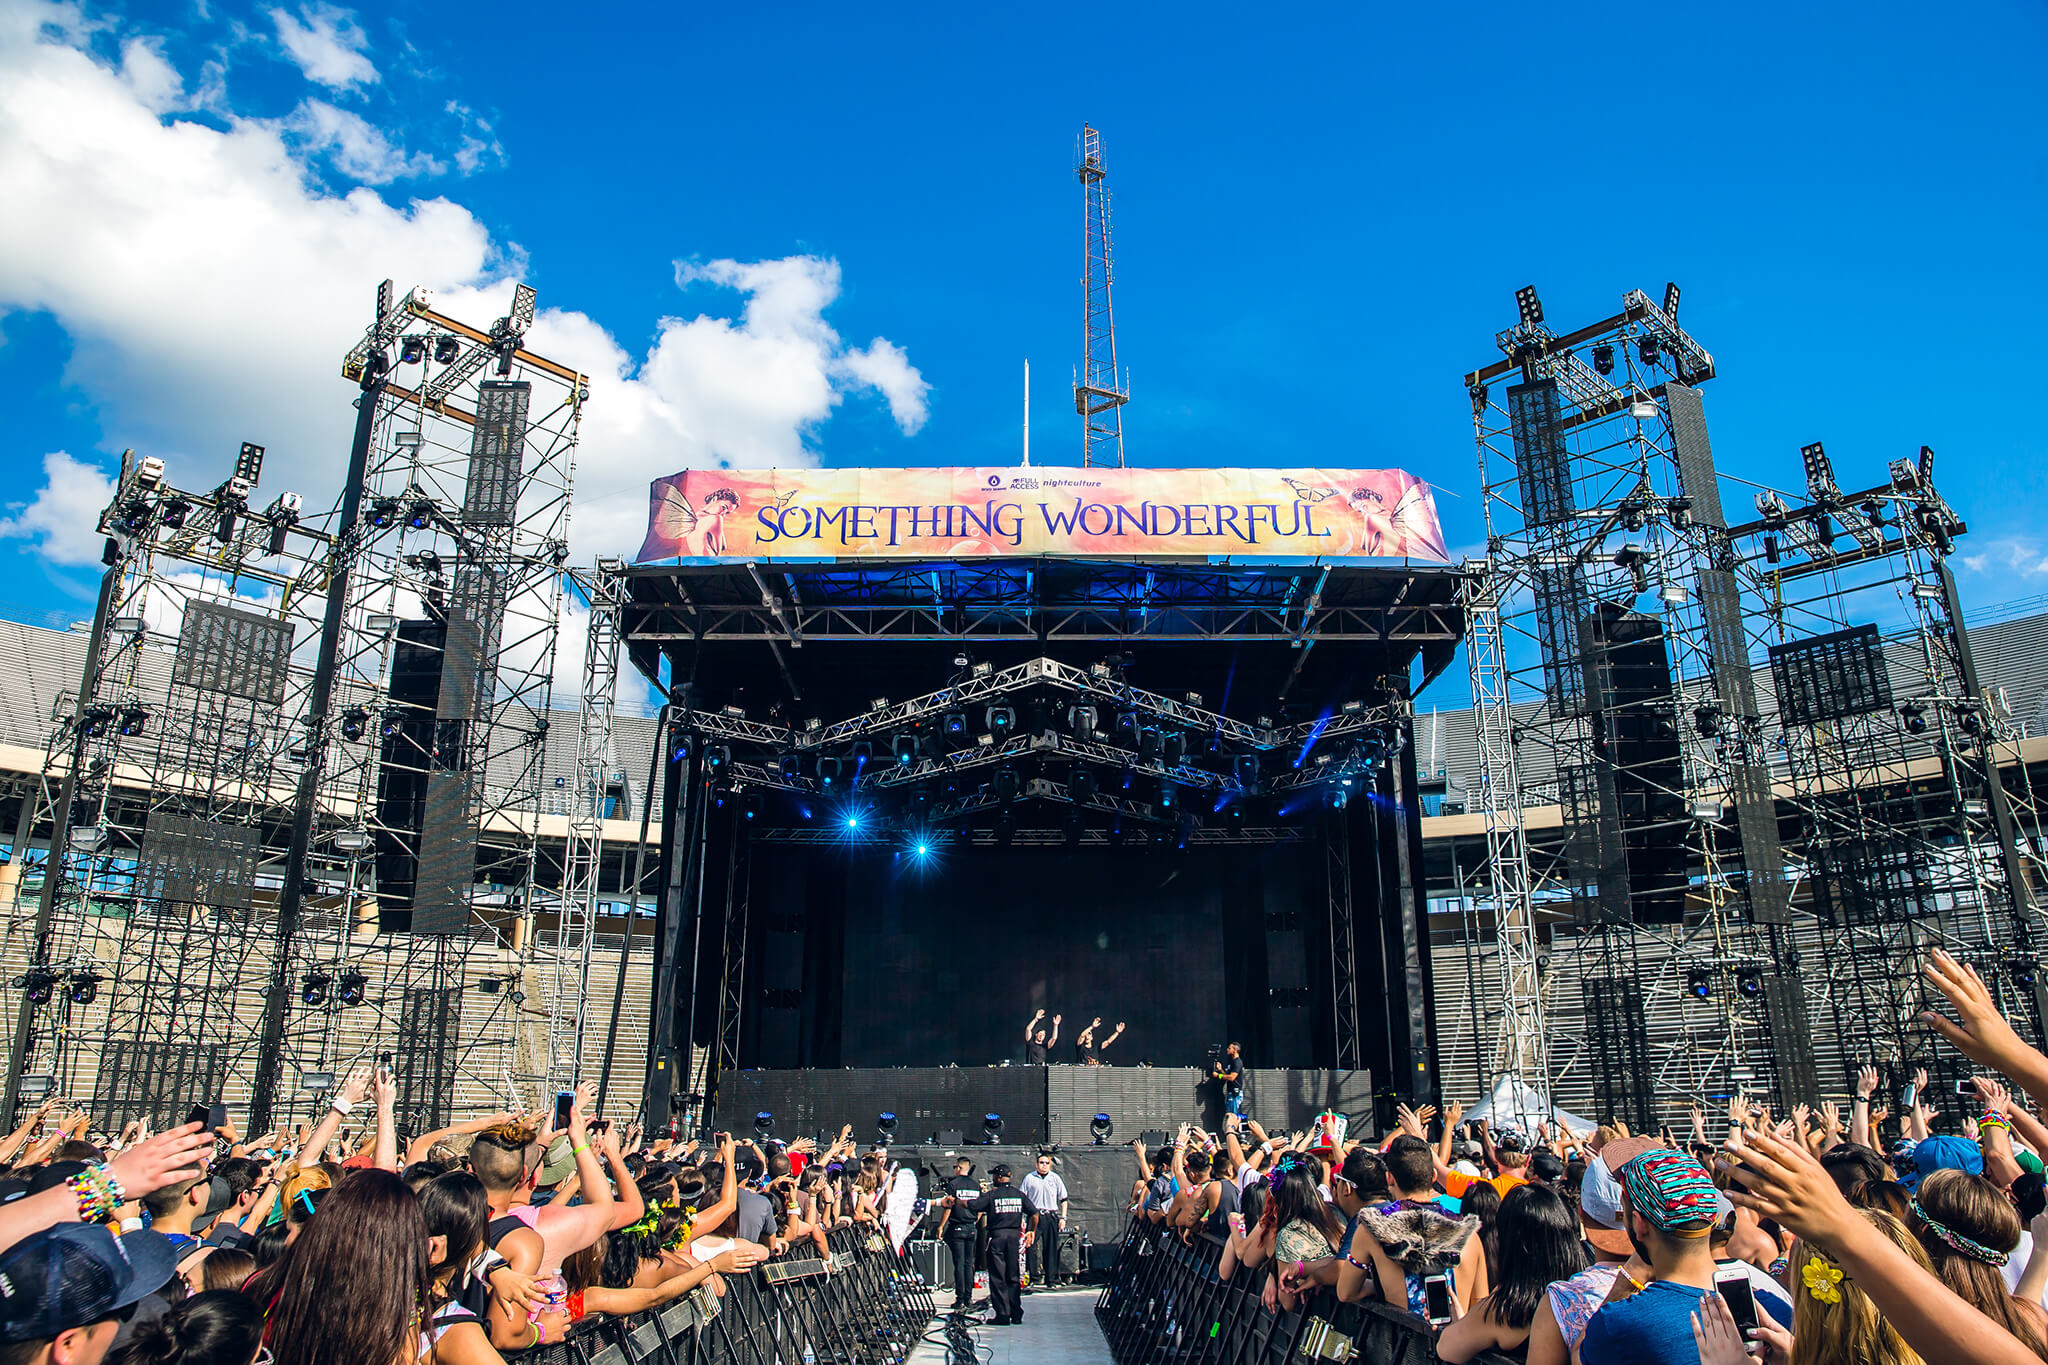 Main stage at Something Wonderful 2015